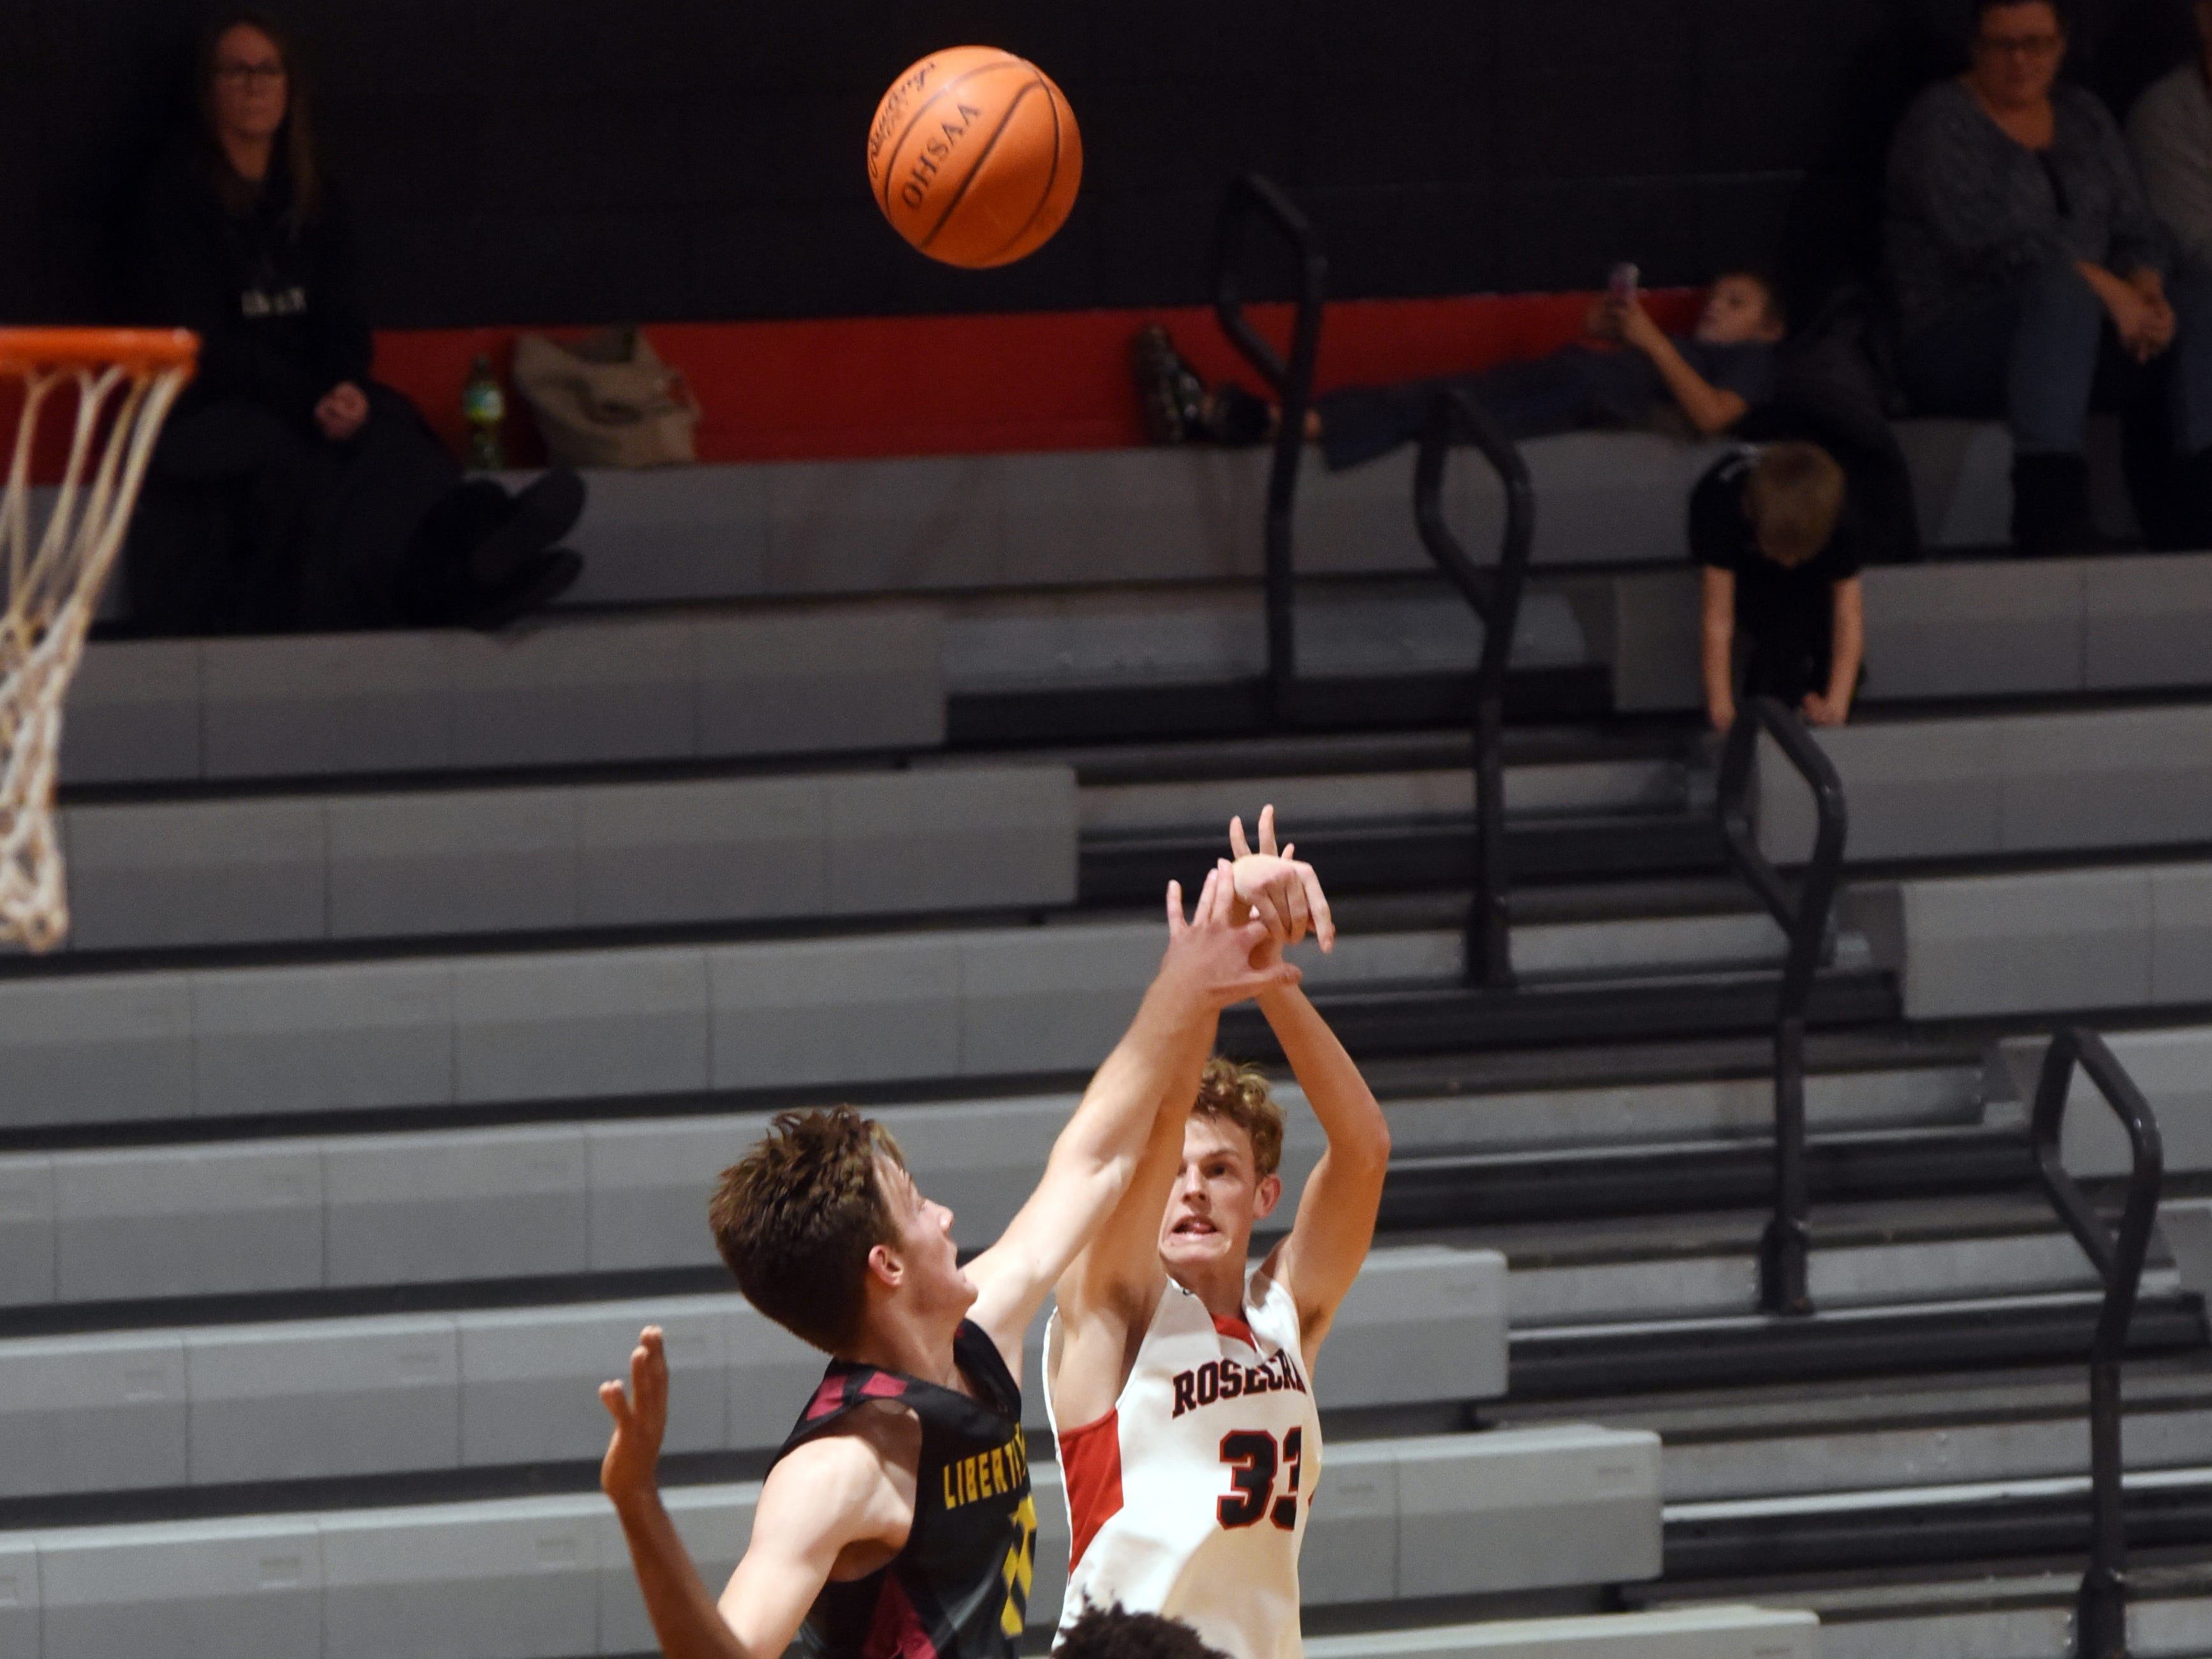 Kaid Brown, of Rosecrans, shoots a 3 during the seocnd half against Liberty Christian on Monday night at Rogge Gymnasium.